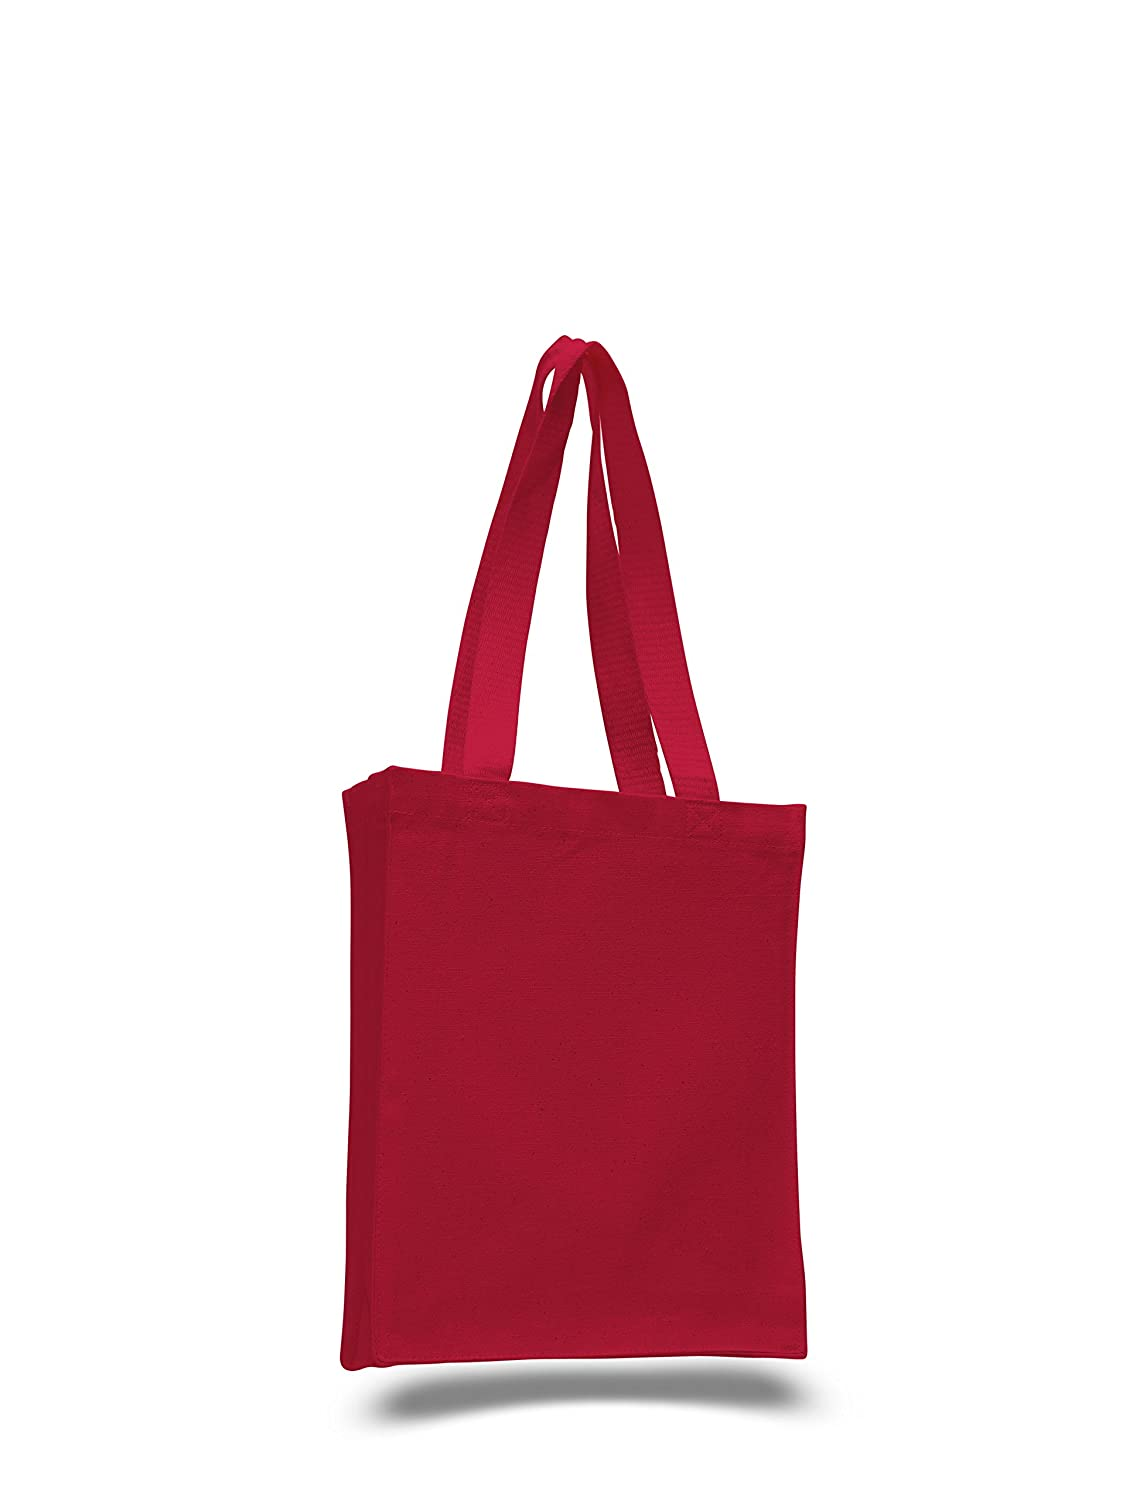 f69e1964a67359 Amazon.com: Heavy Duty Canvas Tote Bag, Perfect for Ipad, Books, Bible Set  of 6 (Red): ToteBagFactory